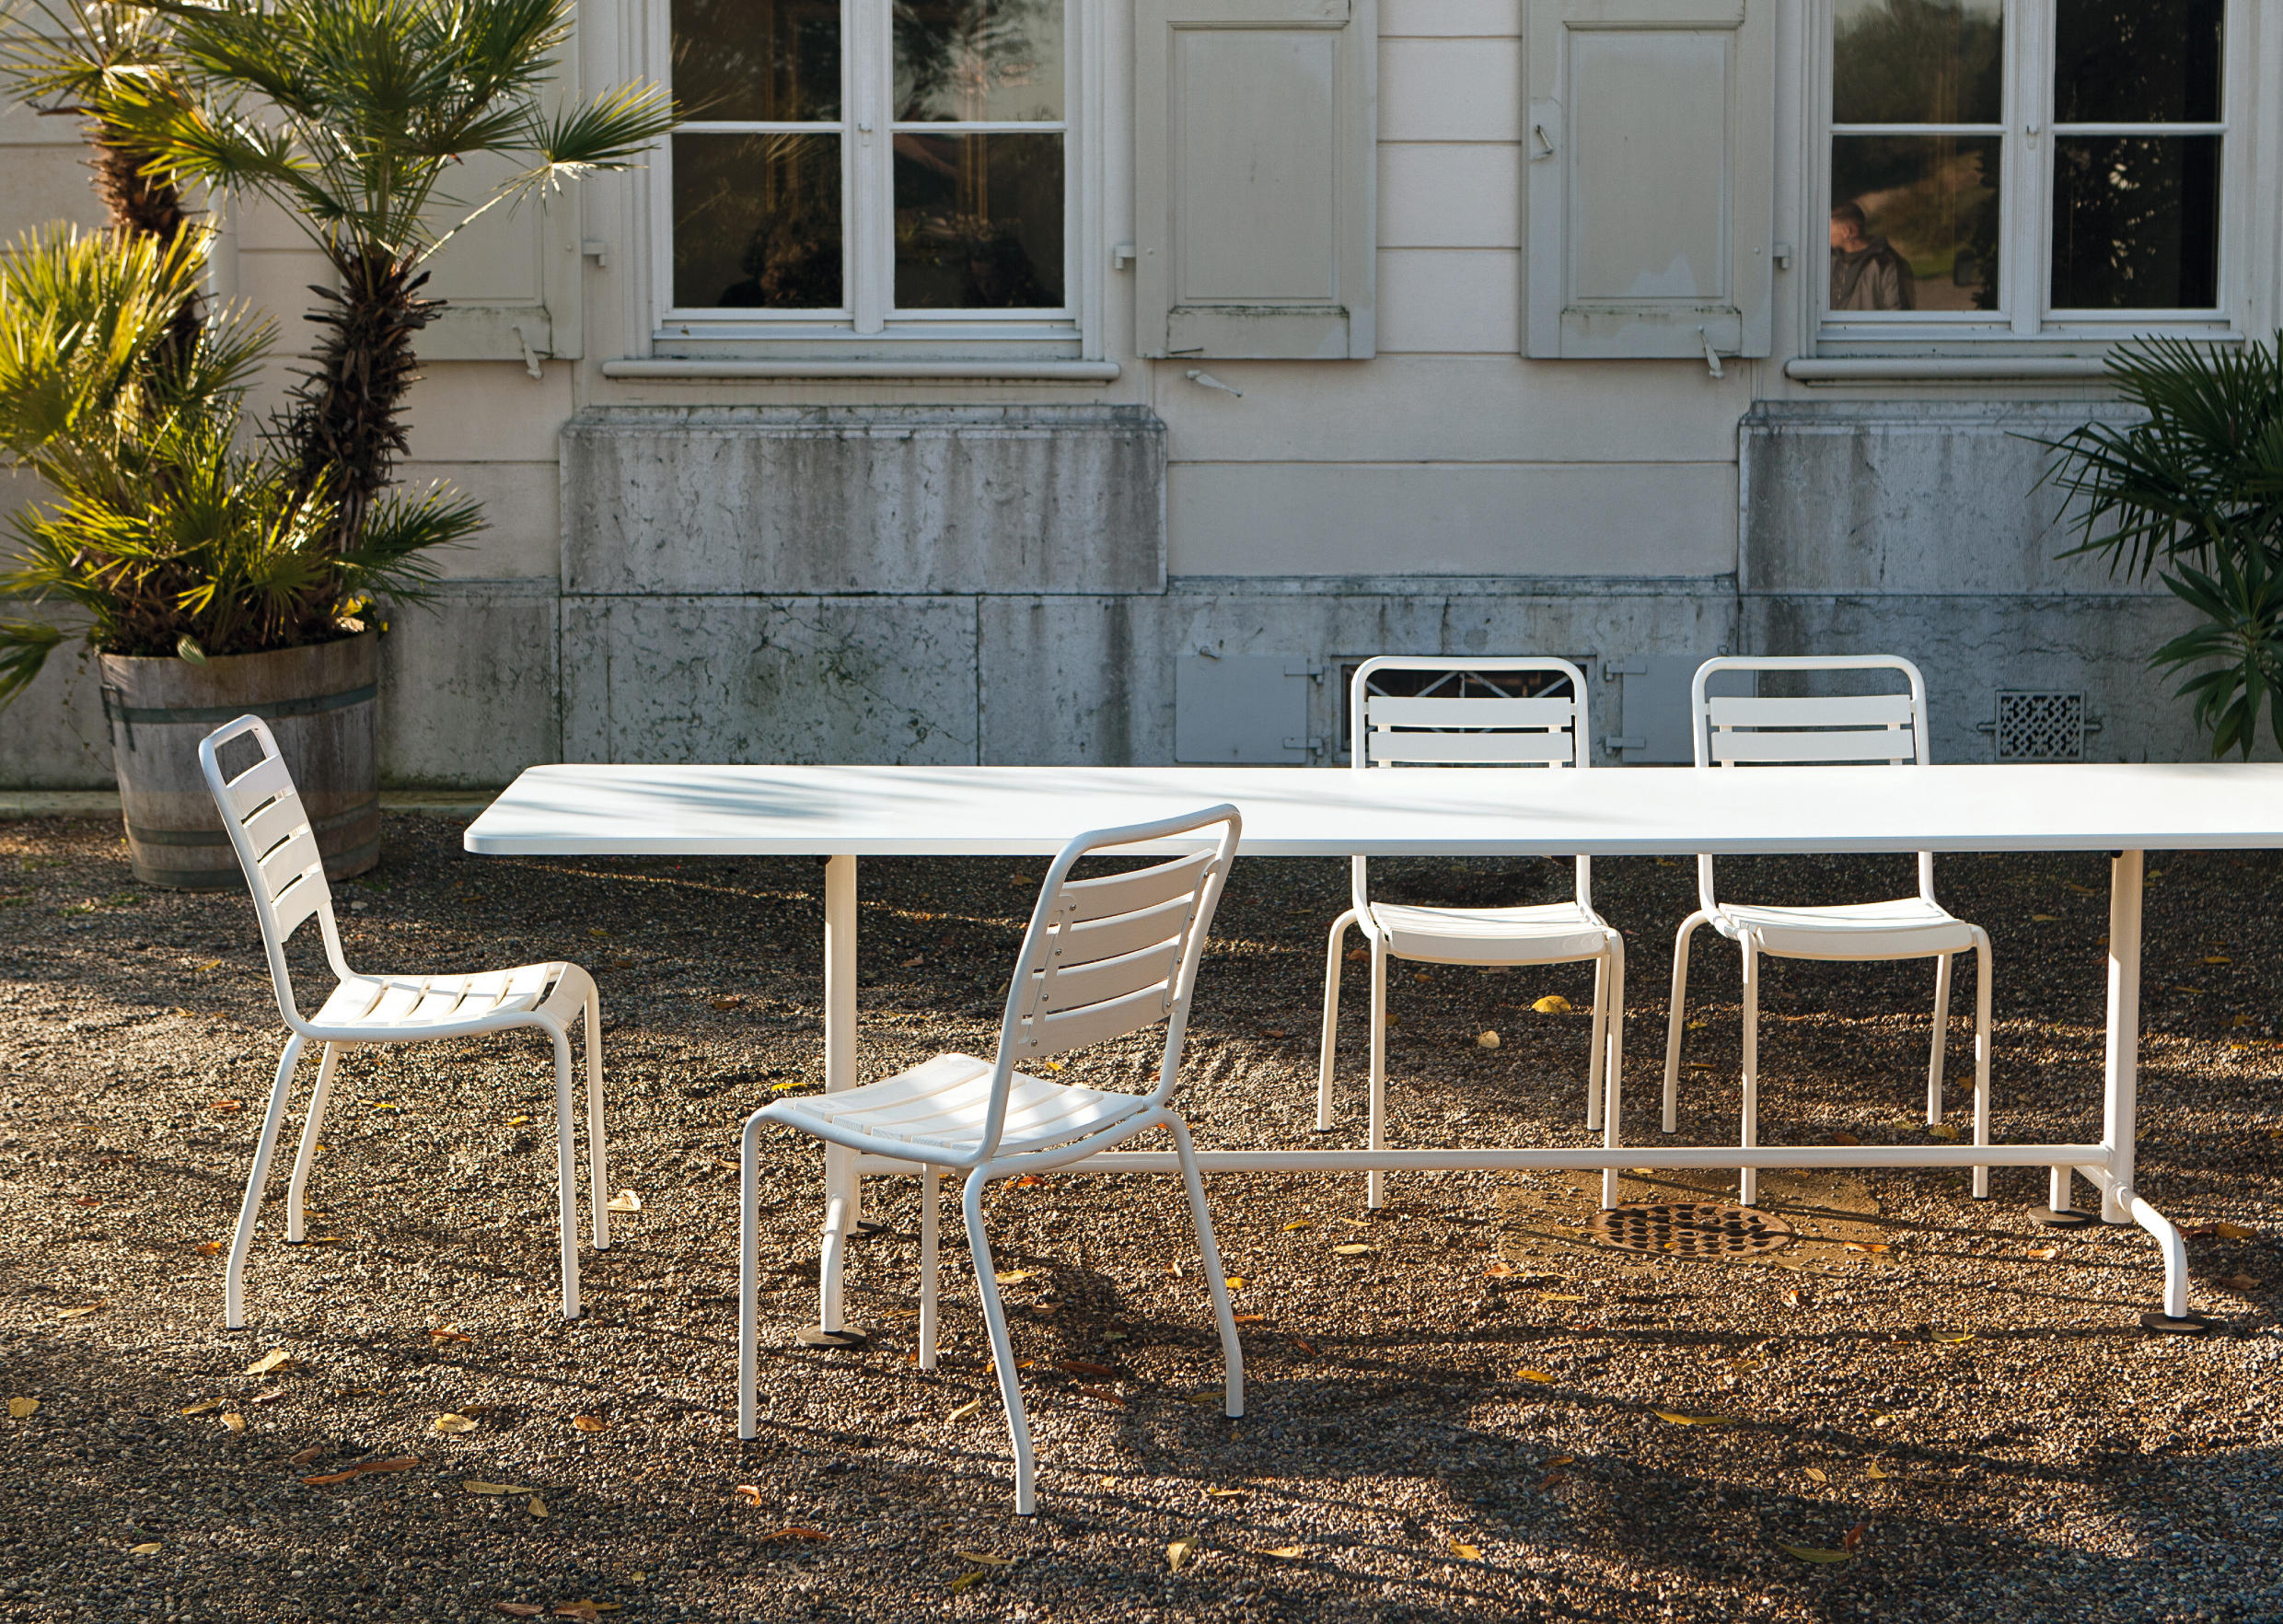 Asian Garden Zofingen The Garden Chair Chairs From Atelier Alinea Architonic